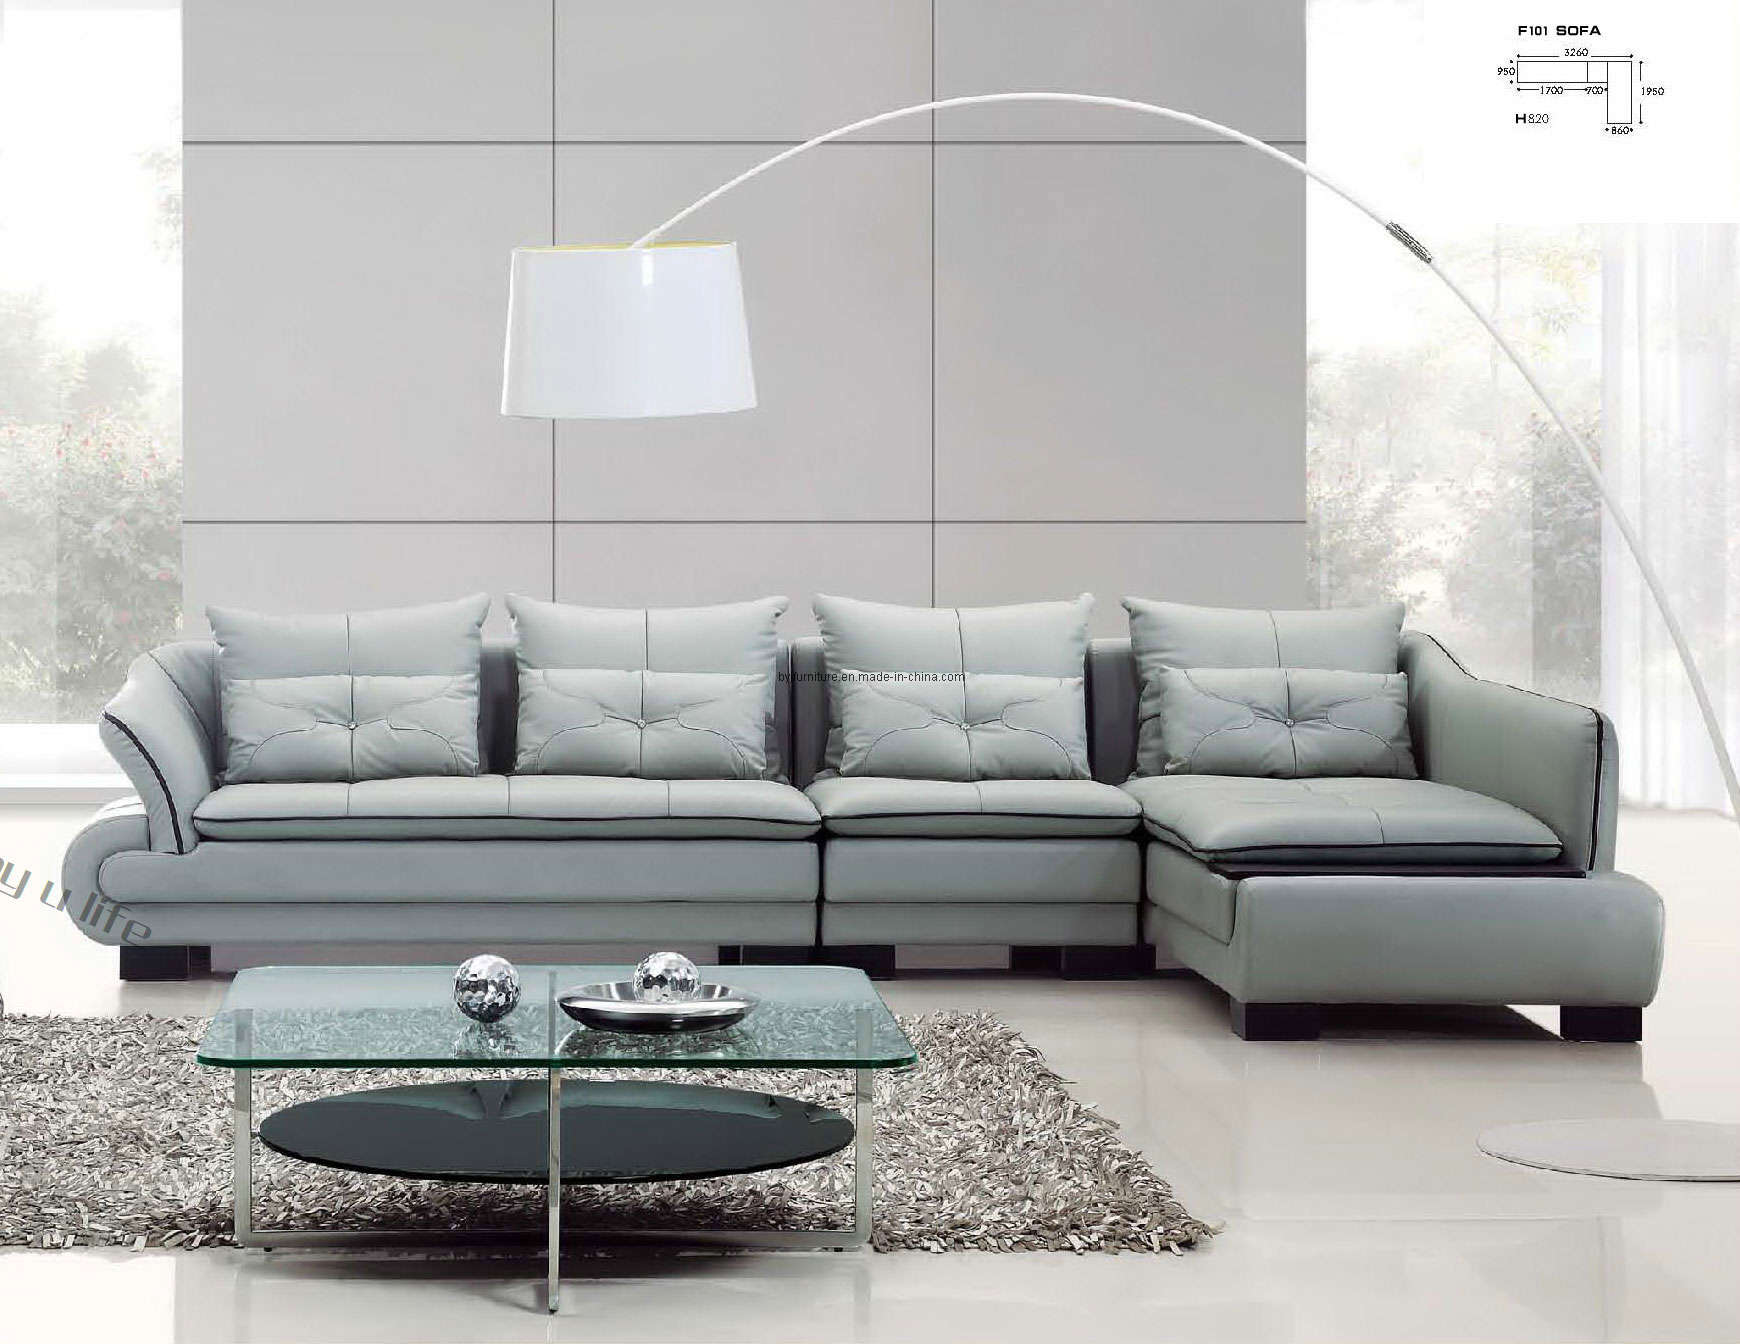 Modern Style Sofa 25 latest sofa set designs for living room furniture ideas - hgnv